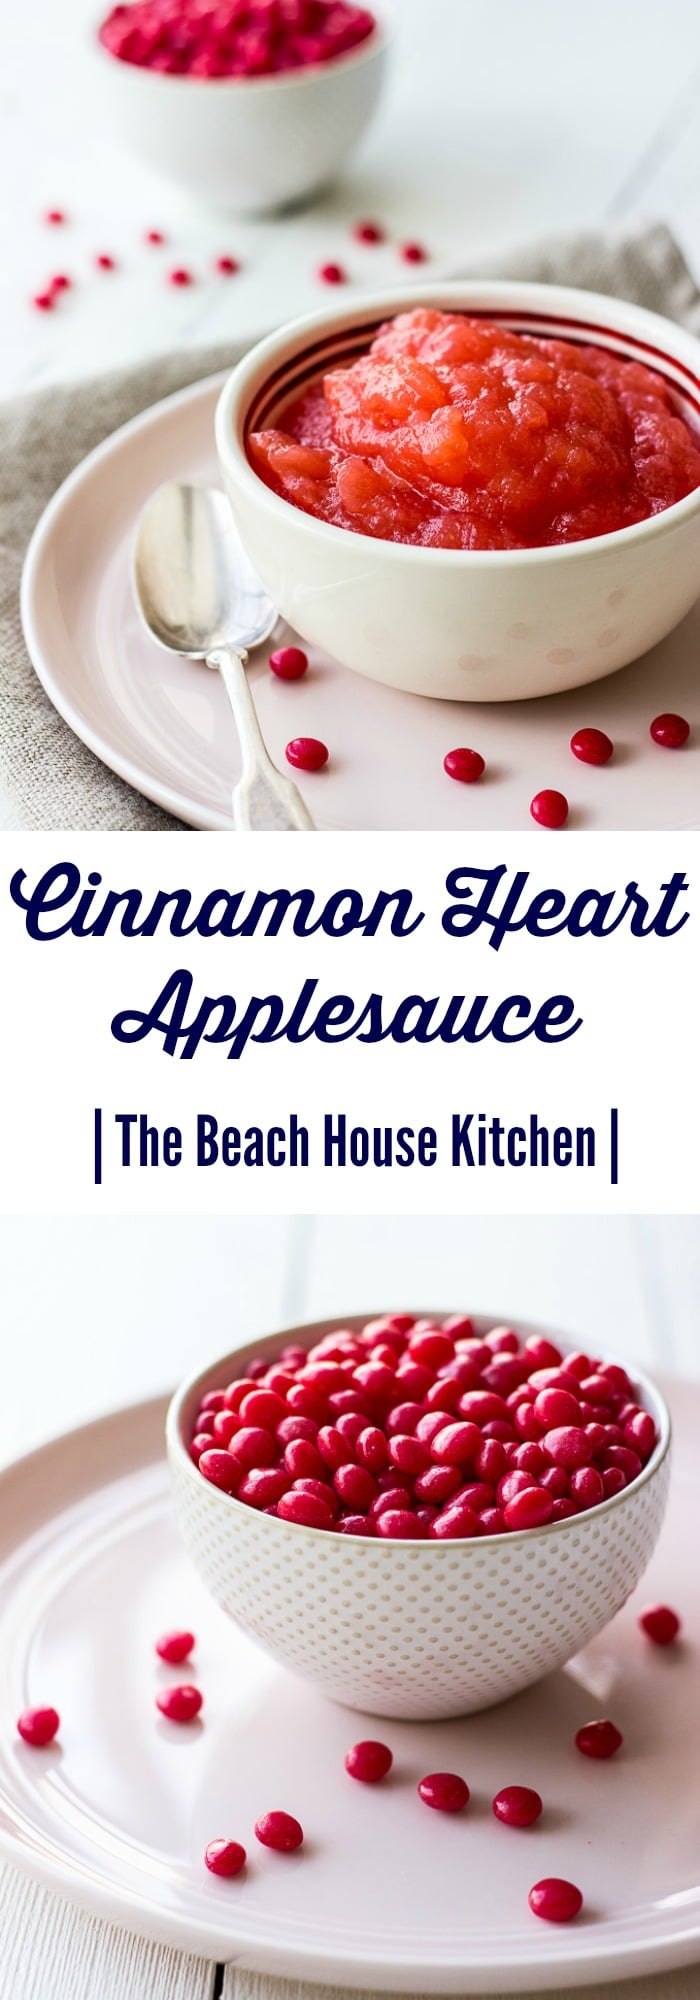 Cinnamon Heart Applesauce